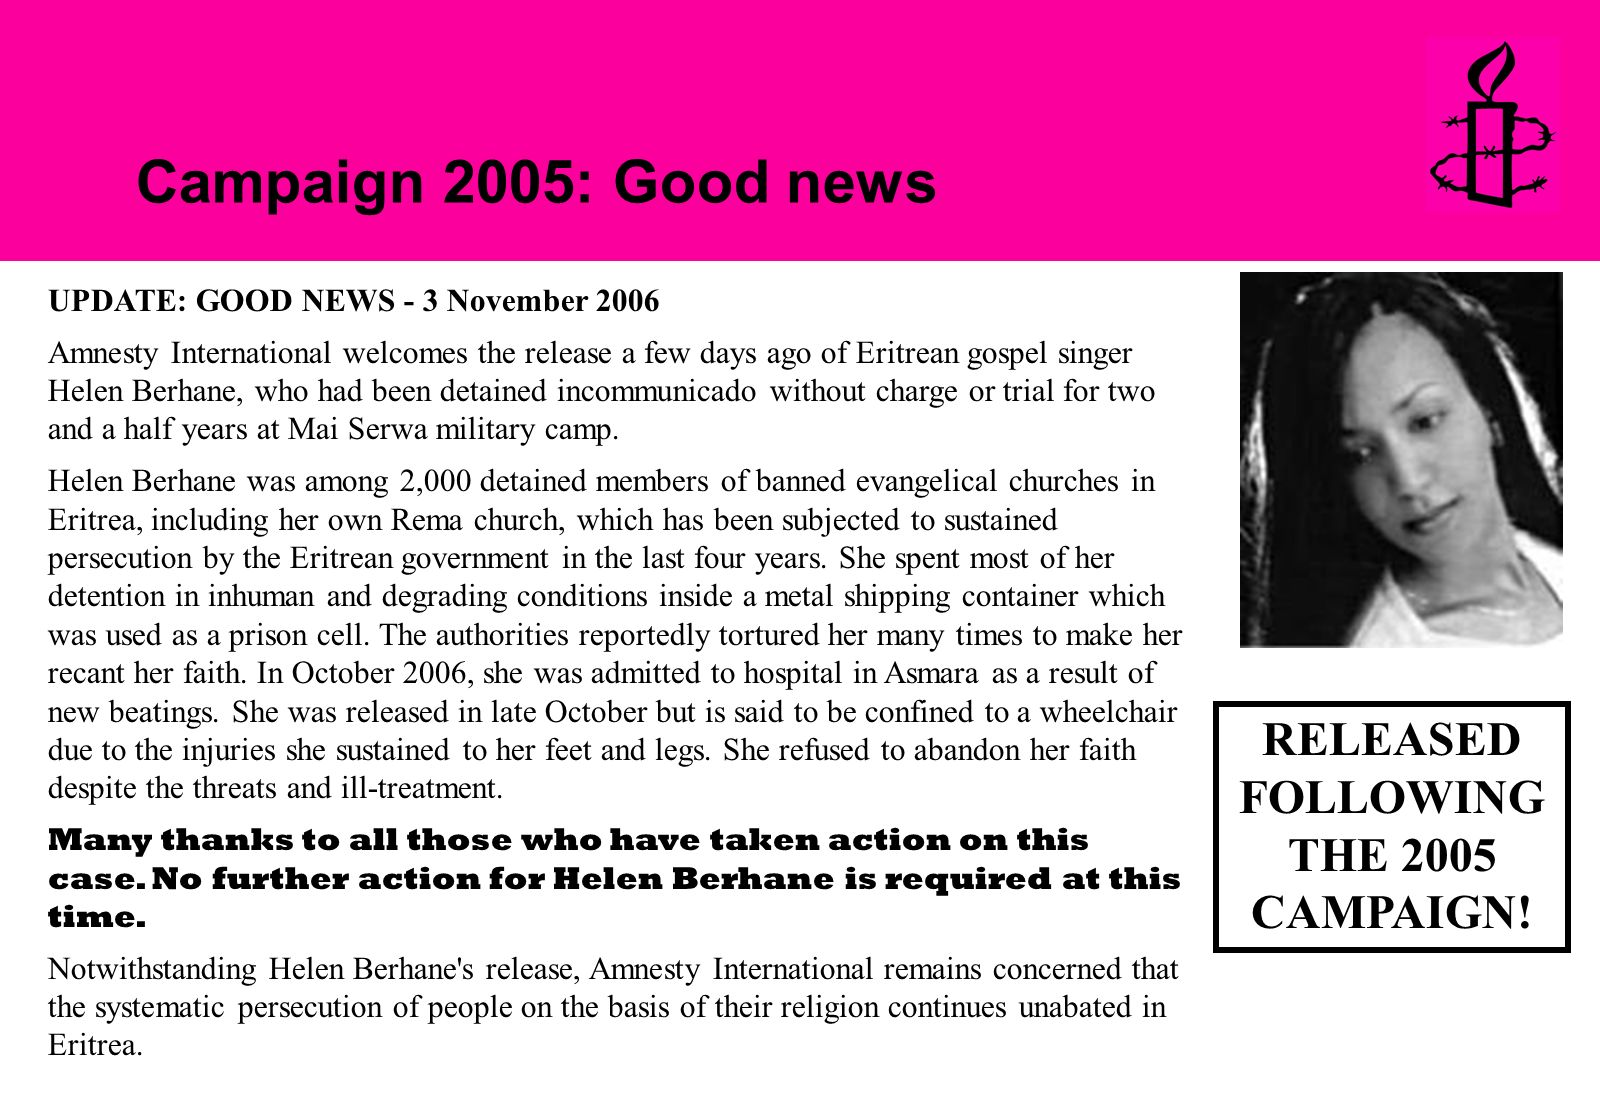 Campaign 2005: Good news UPDATE: GOOD NEWS - 3 November 2006 Amnesty International welcomes the release a few days ago of Eritrean gospel singer Helen Berhane, who had been detained incommunicado without charge or trial for two and a half years at Mai Serwa military camp.